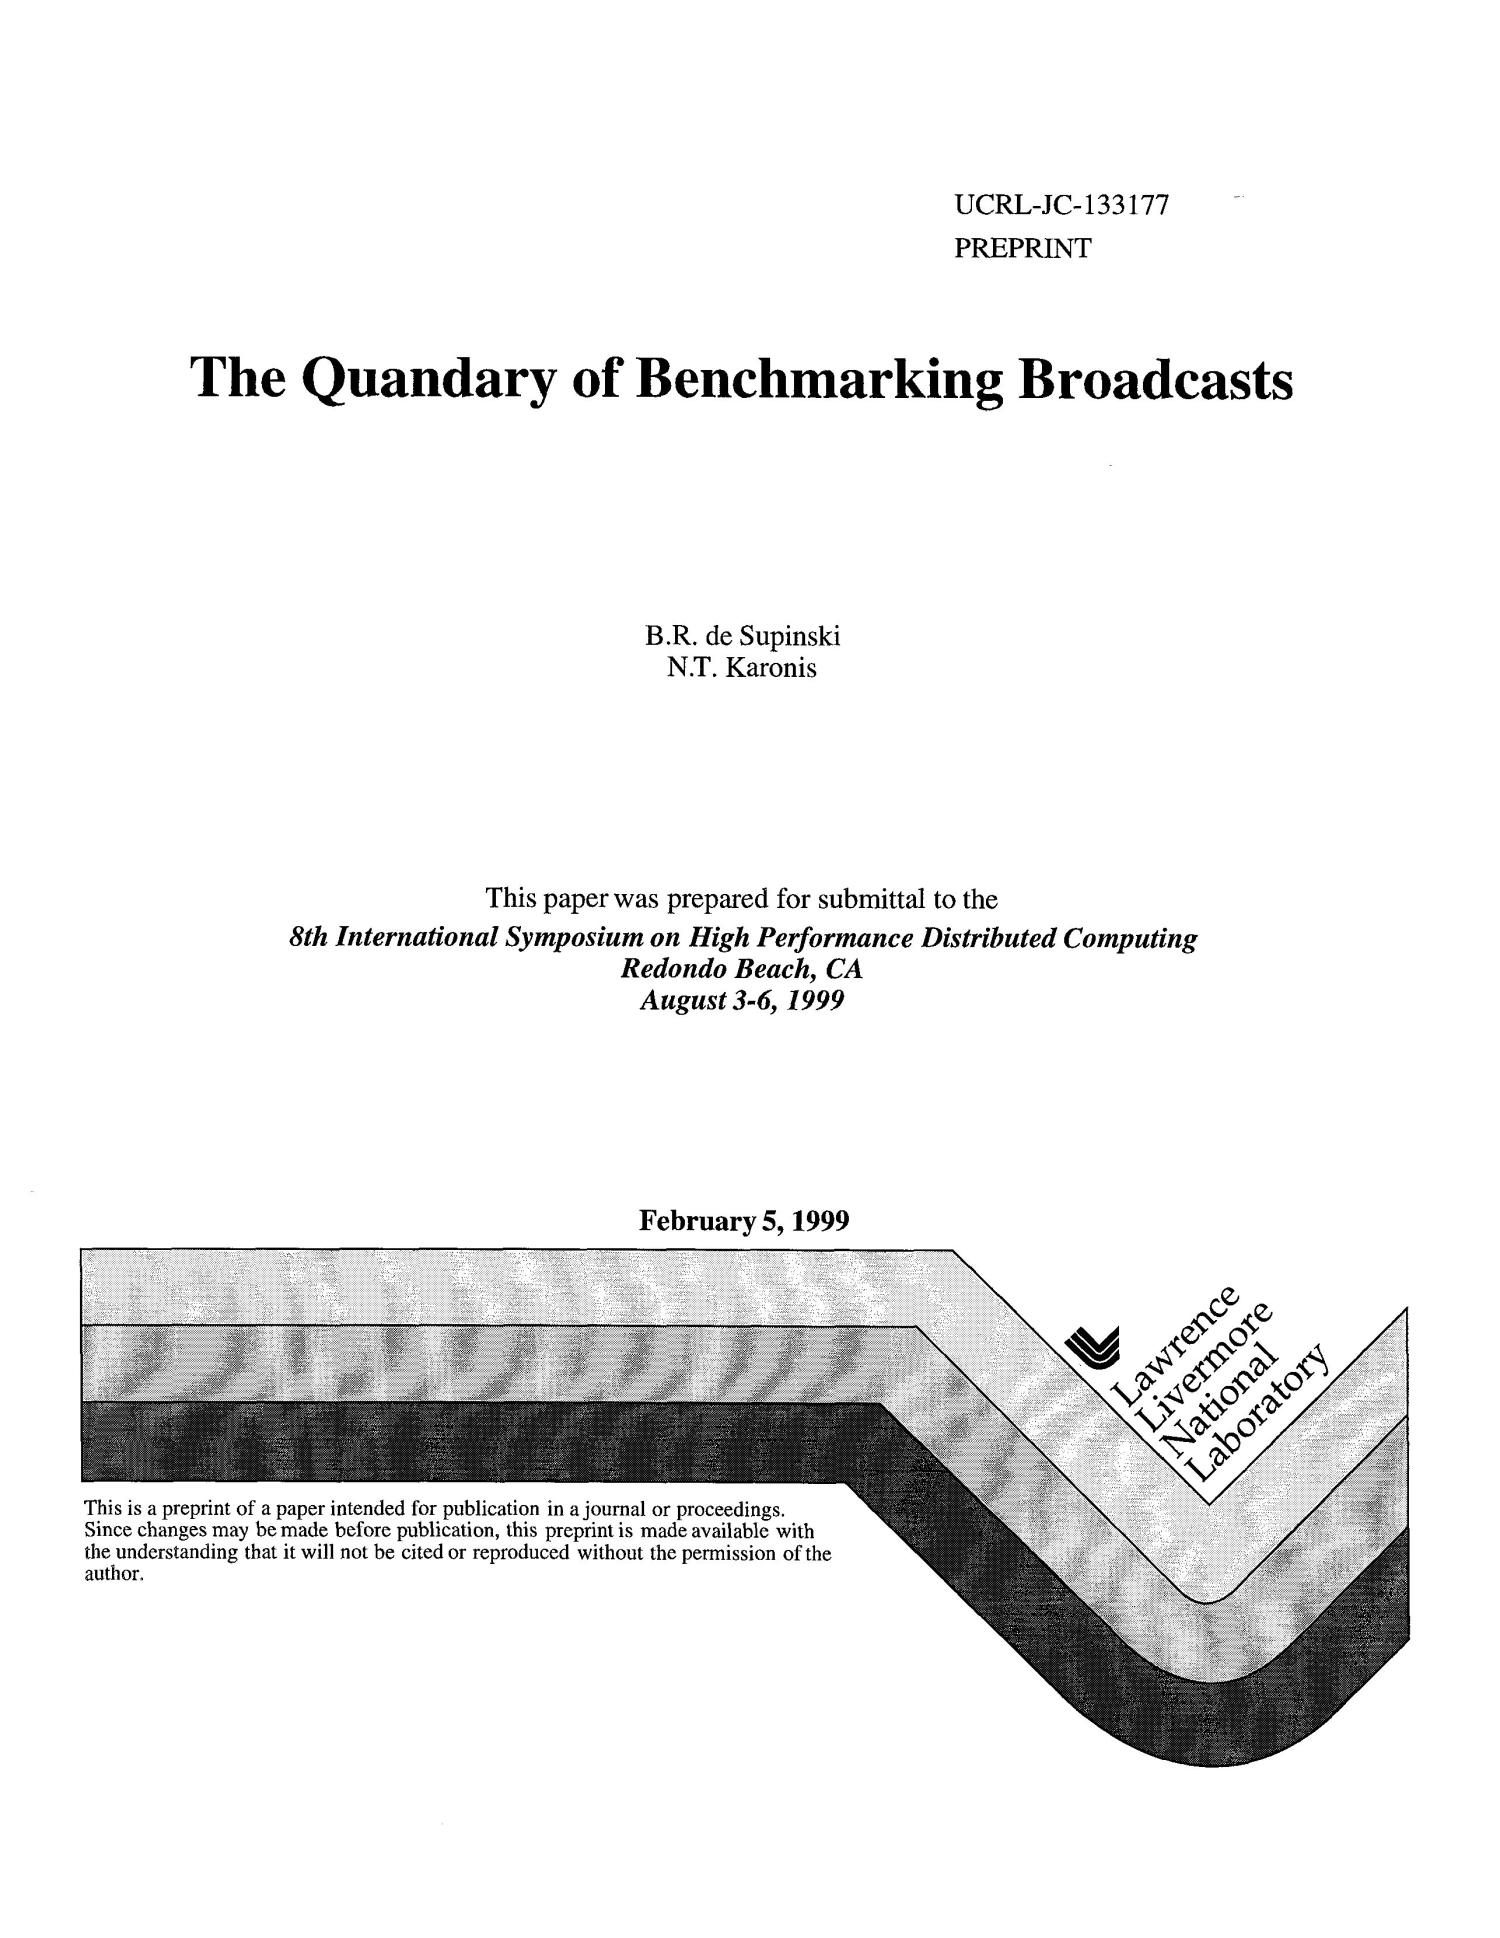 The quandry of benchmarking broadcasts                                                                                                      [Sequence #]: 1 of 14